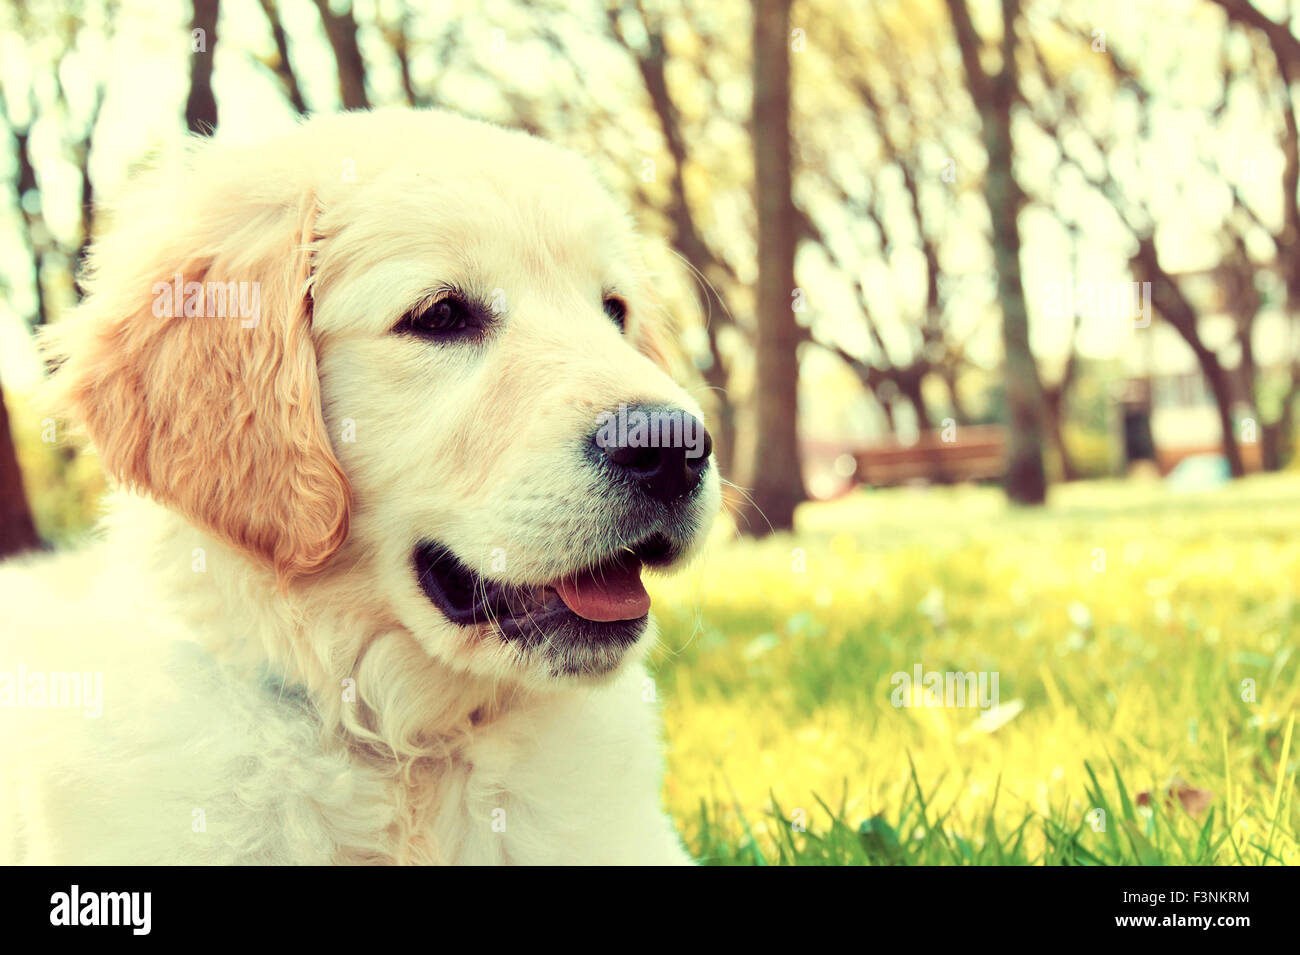 Cute golden retriever puppy in the park at summer Vintage